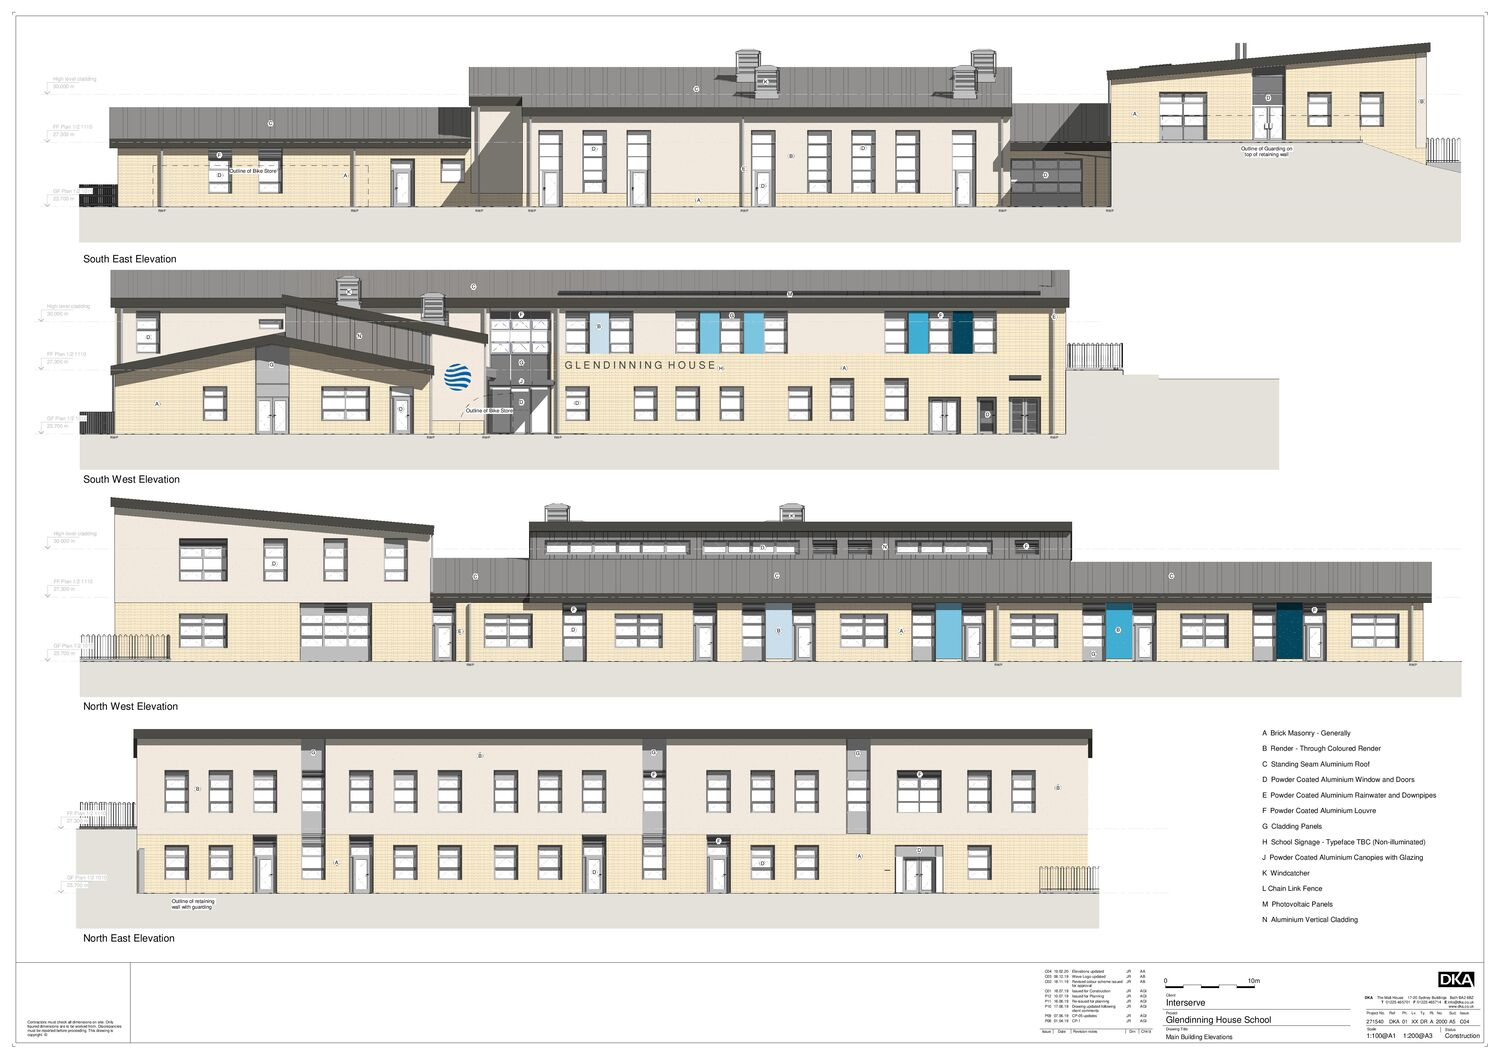 GH main building elevations